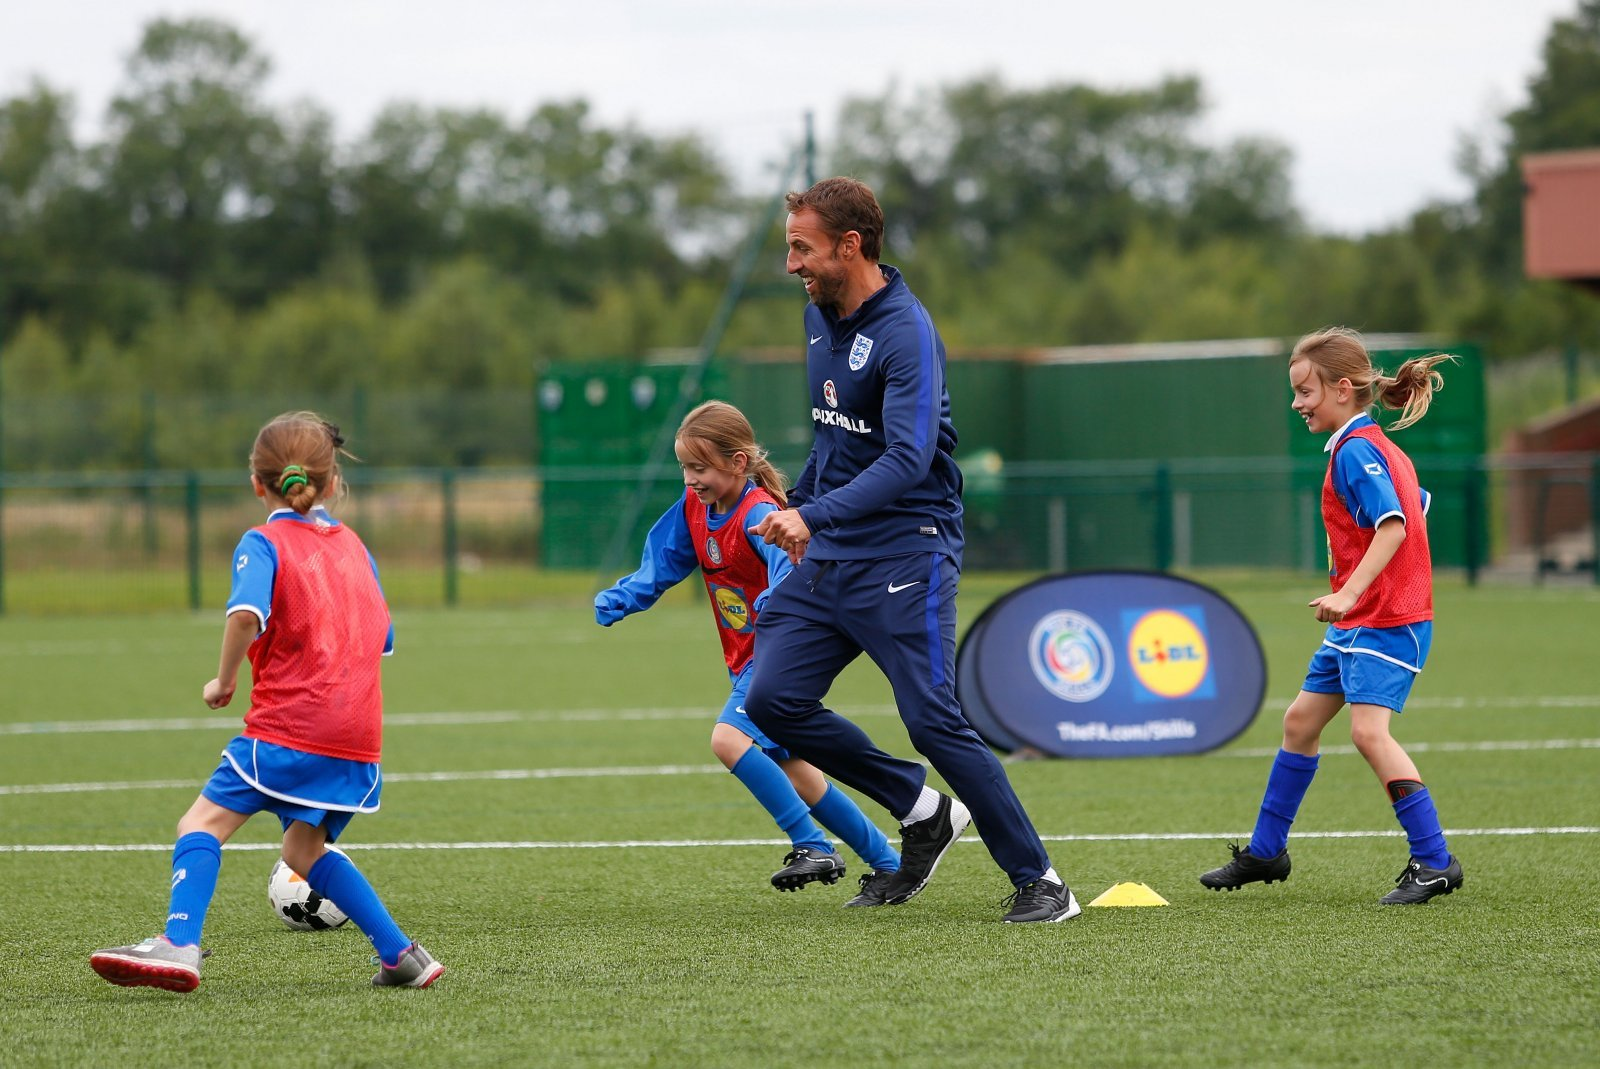 England Manager Gareth Southgate Surprises Young